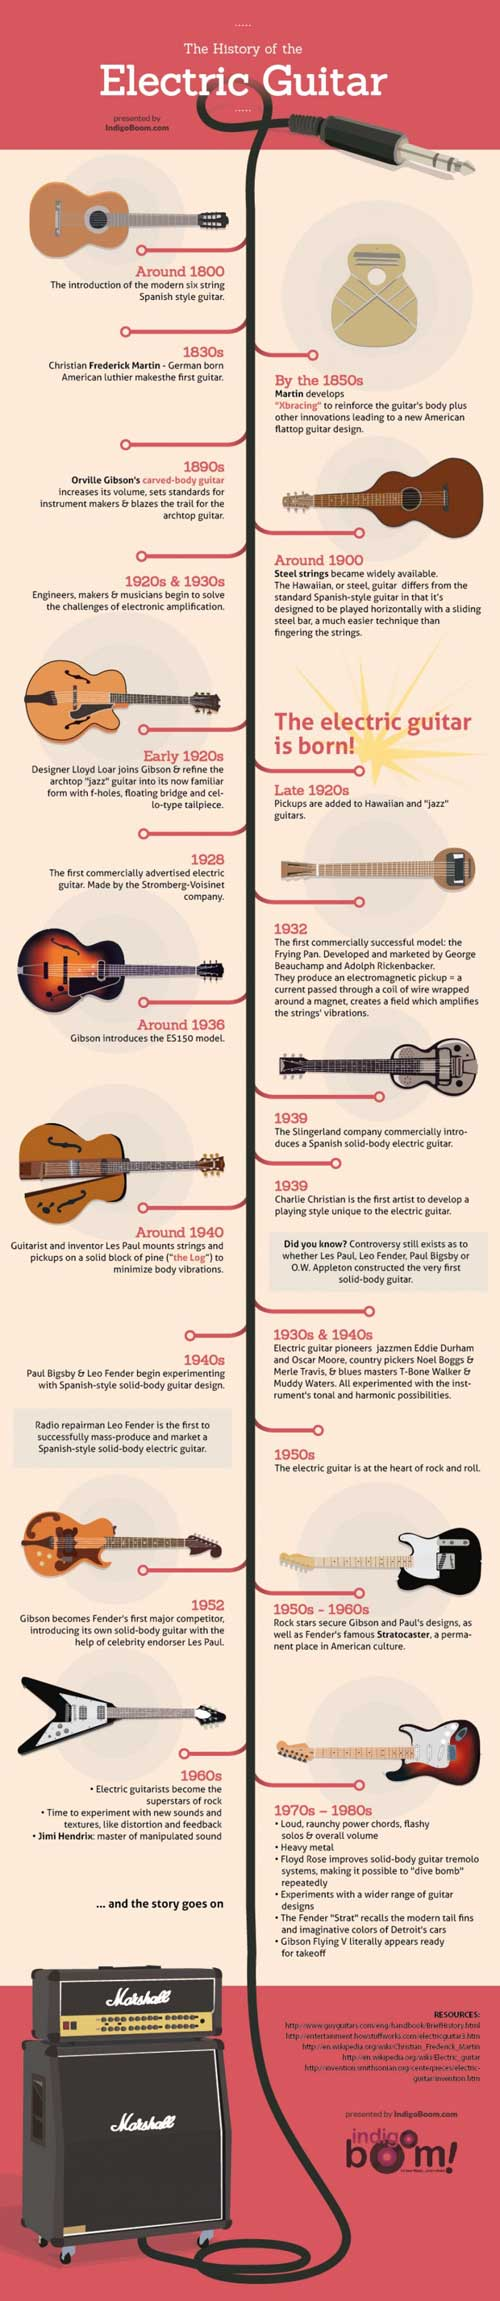 history of guitar essay 1889: joseph kekuku from laie, oahu invents the steel guitar he later moves to the us mainland to share his music with the rest of the world  history and culture.